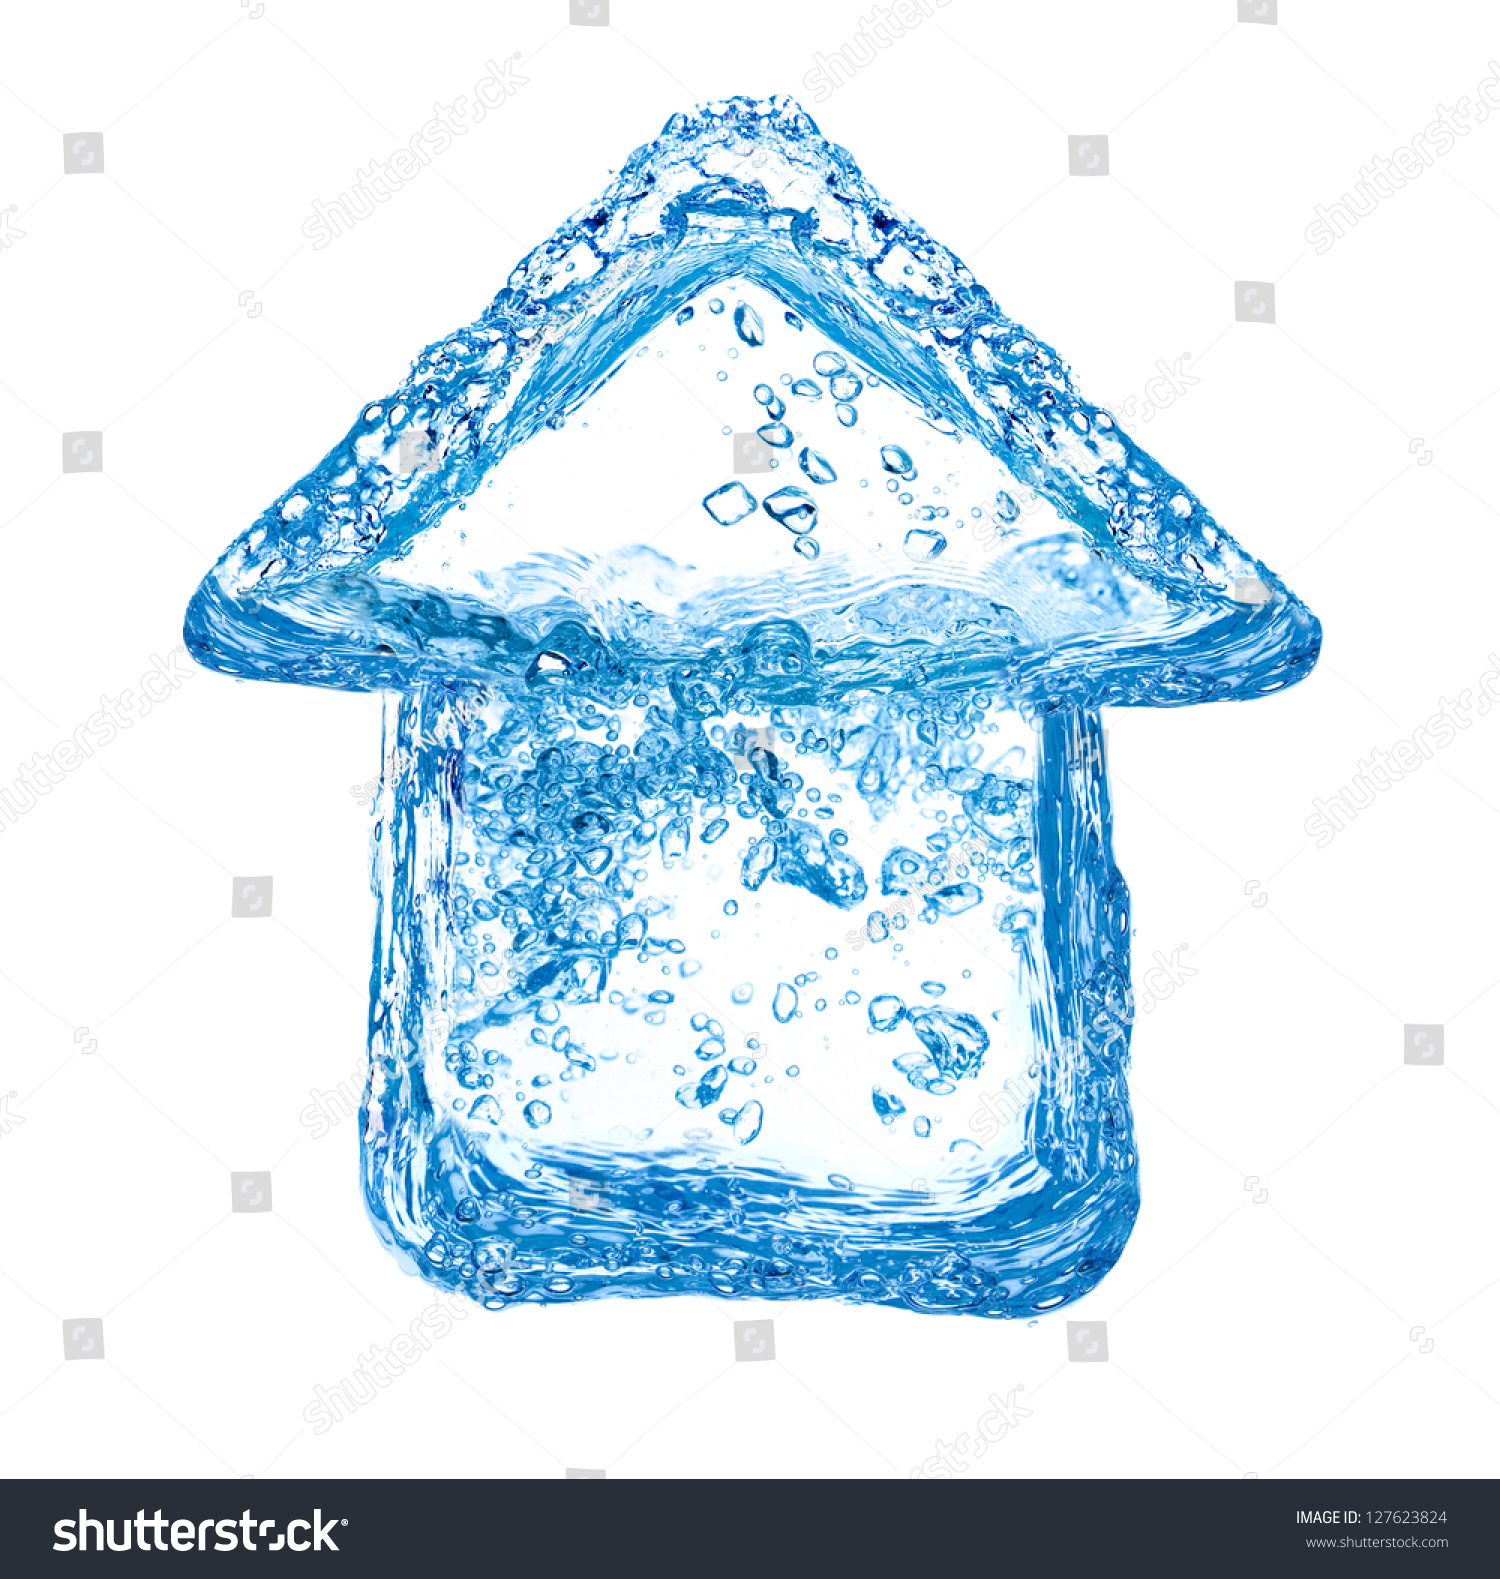 House Symbol Made Of Clean Water Splashes Stock Photo 127623824   Shutterstock